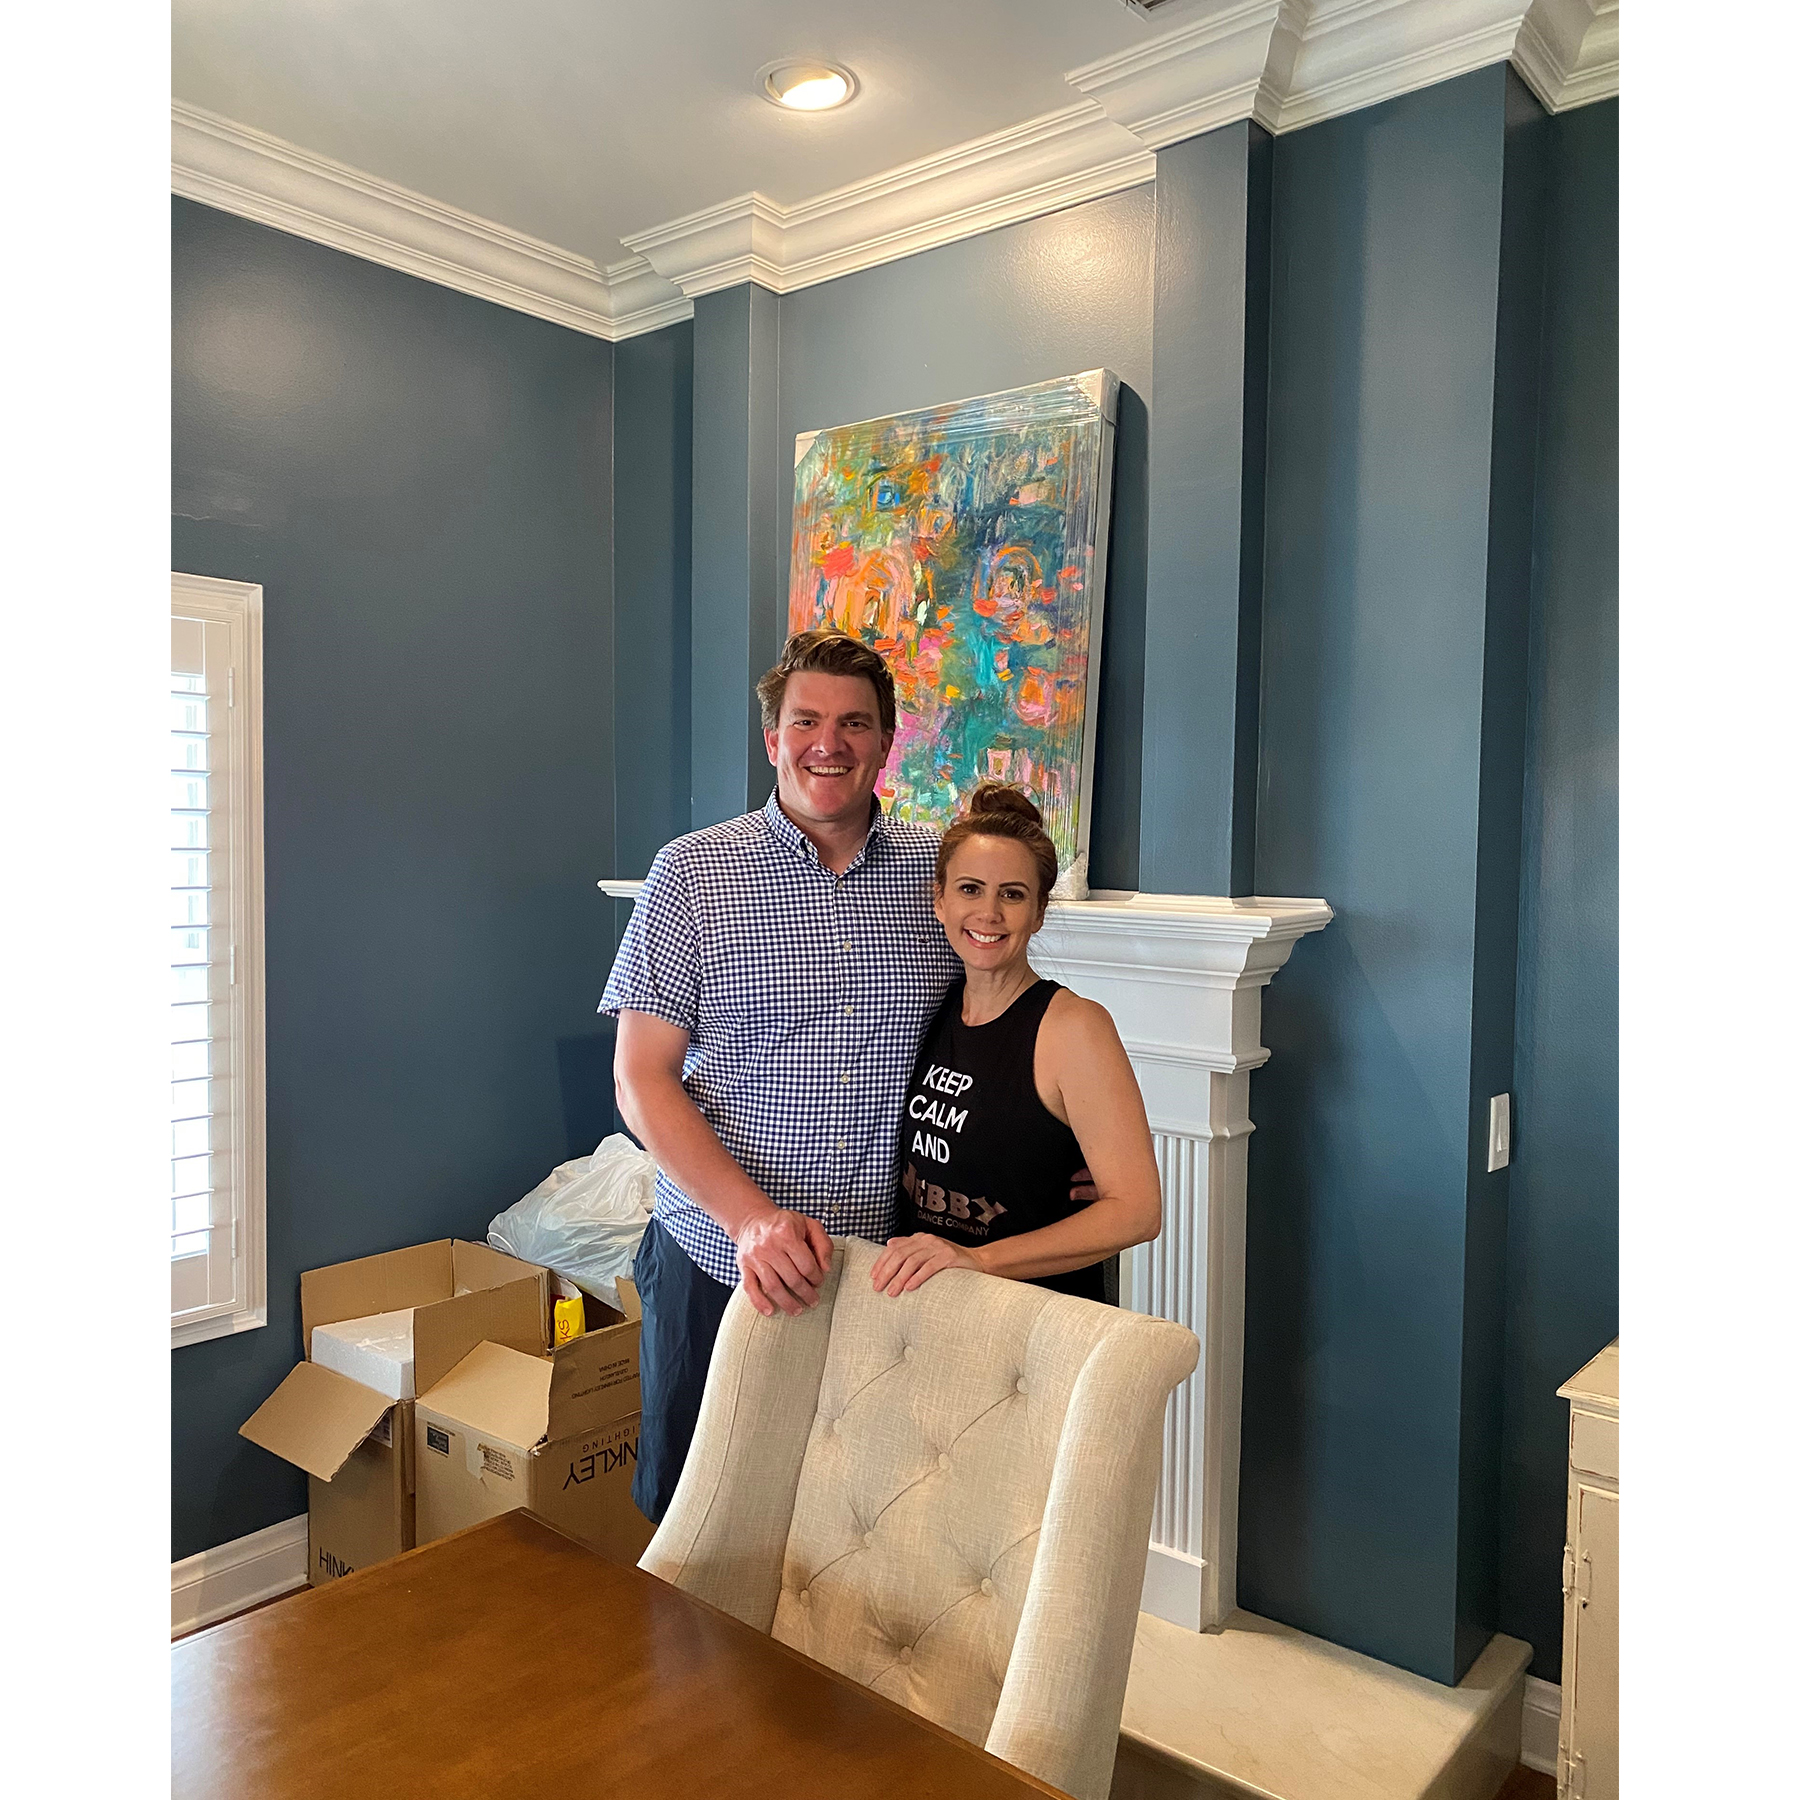 Clients in front of an abstract painting in their home